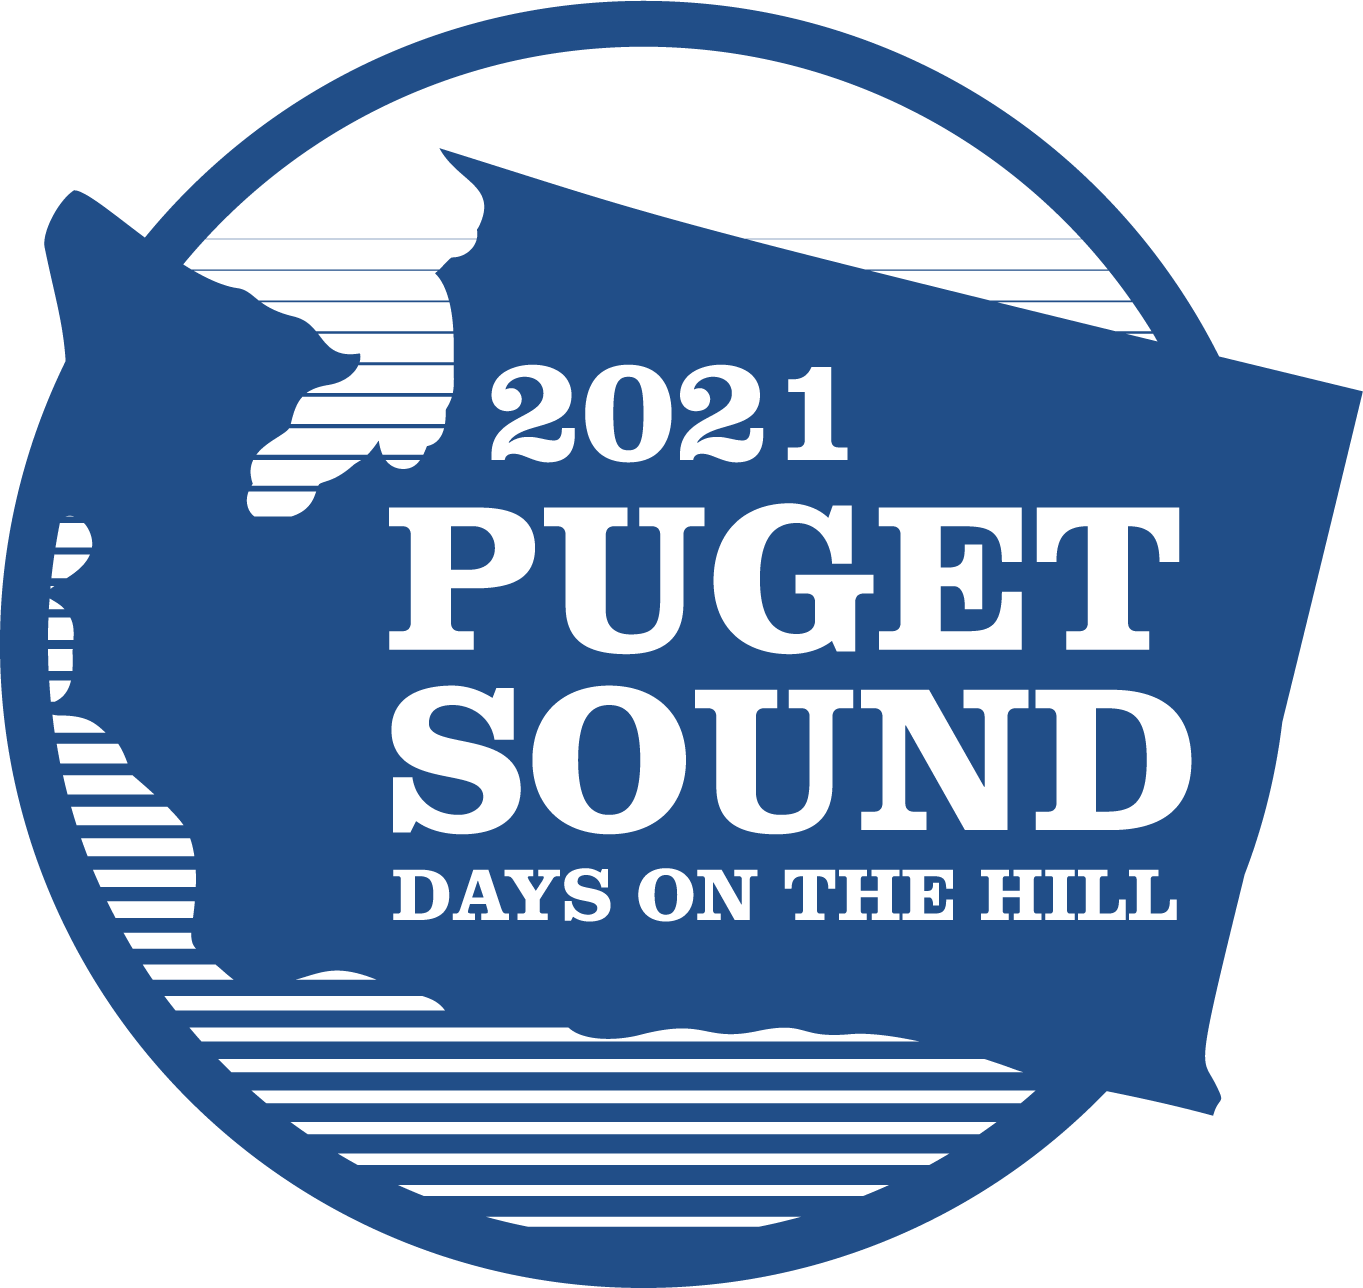 Puget Sound Days on the Hill